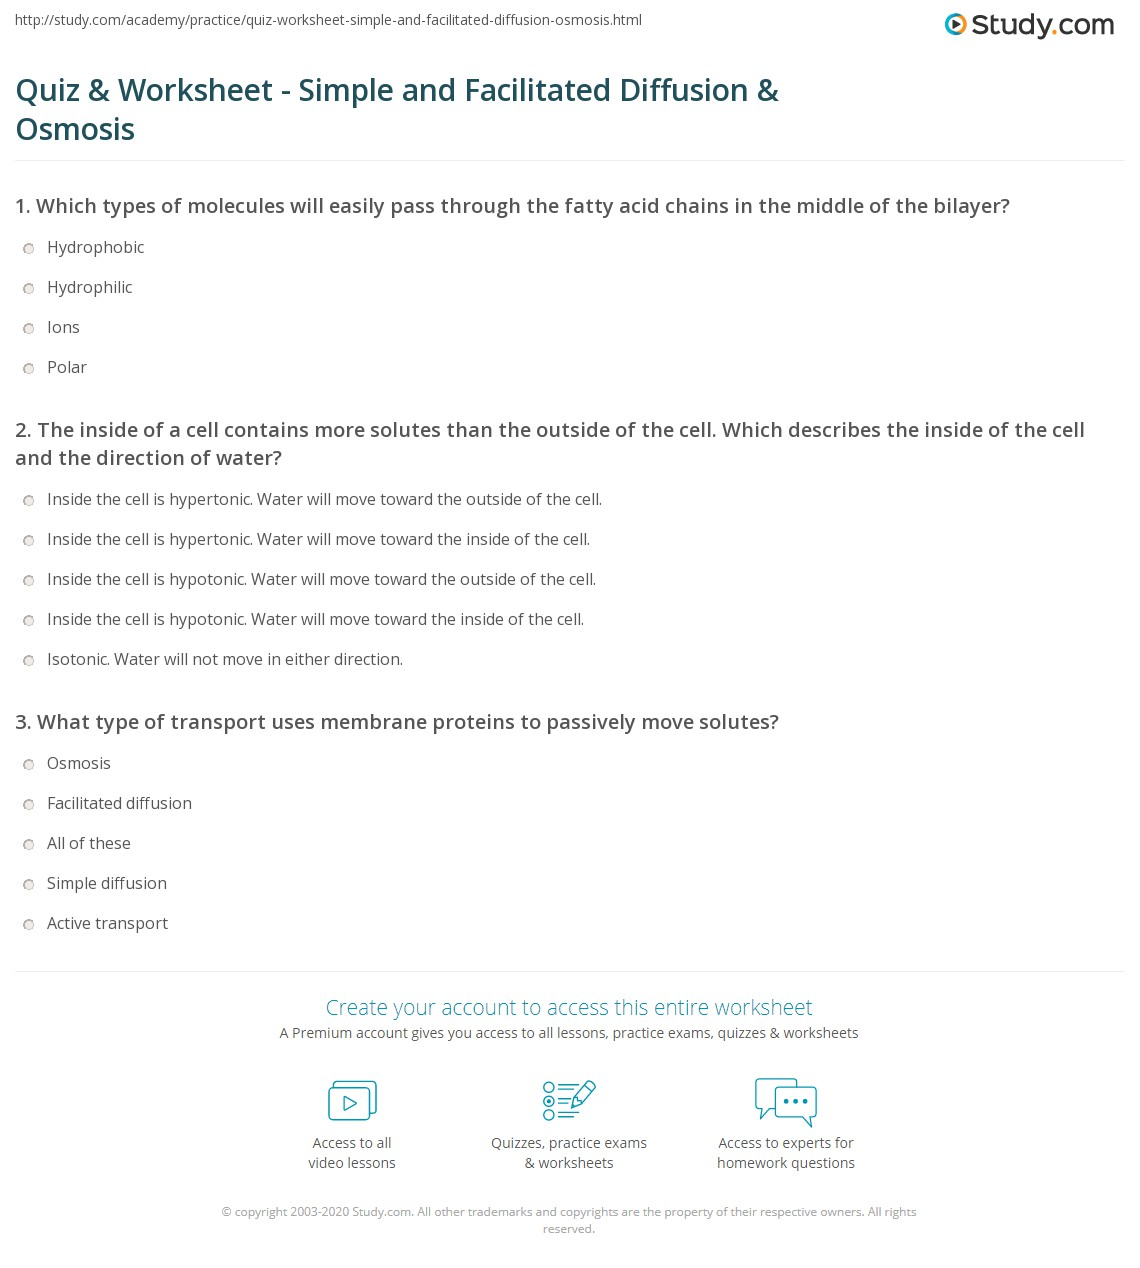 quiz worksheet simple and facilitated diffusion osmosis. Black Bedroom Furniture Sets. Home Design Ideas